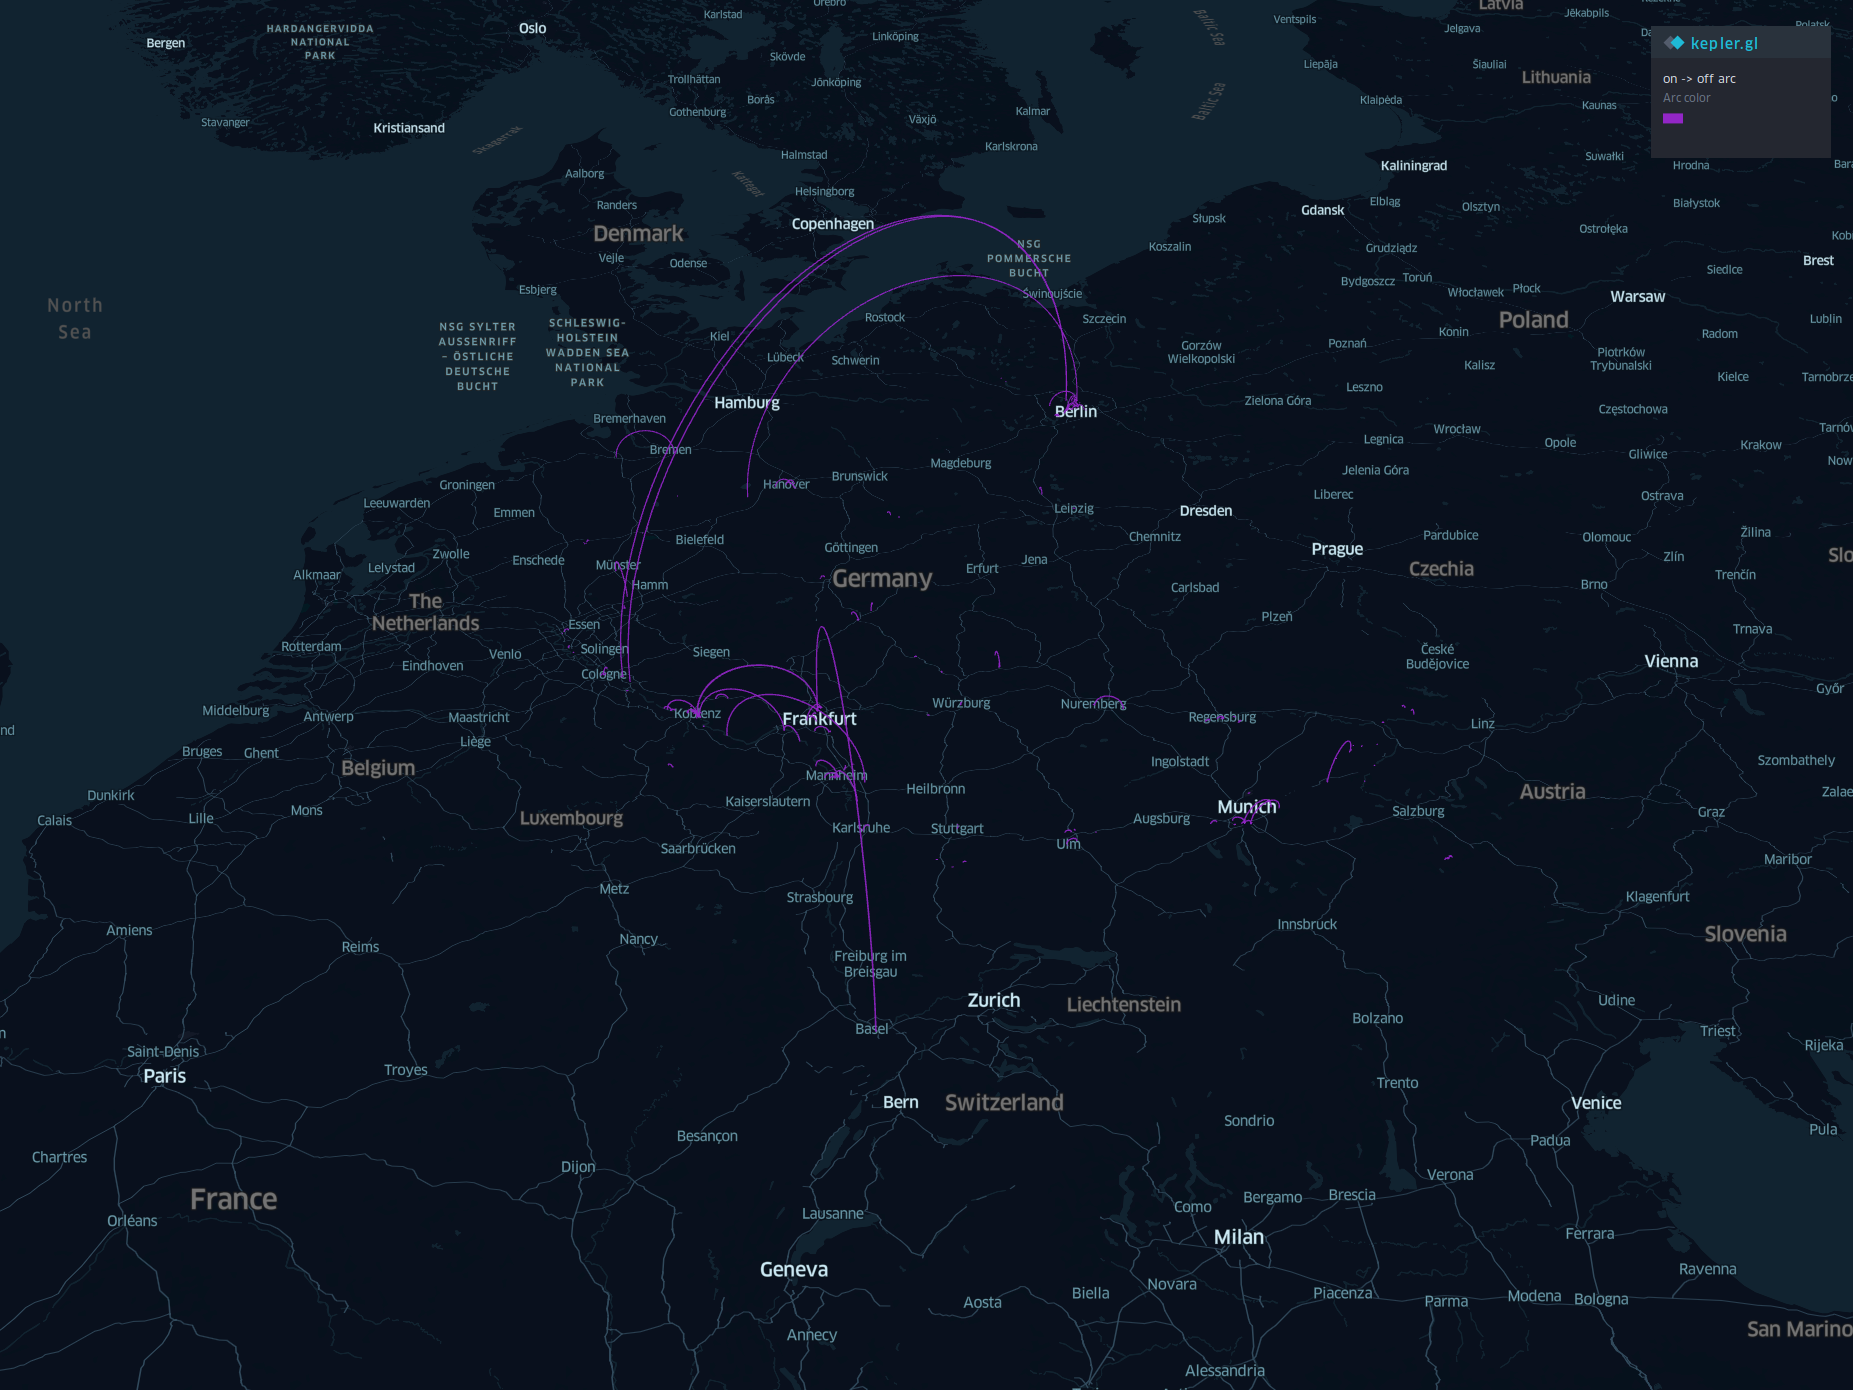 Visualizing my trips from Google Maps with Kepler gl – Incentergy